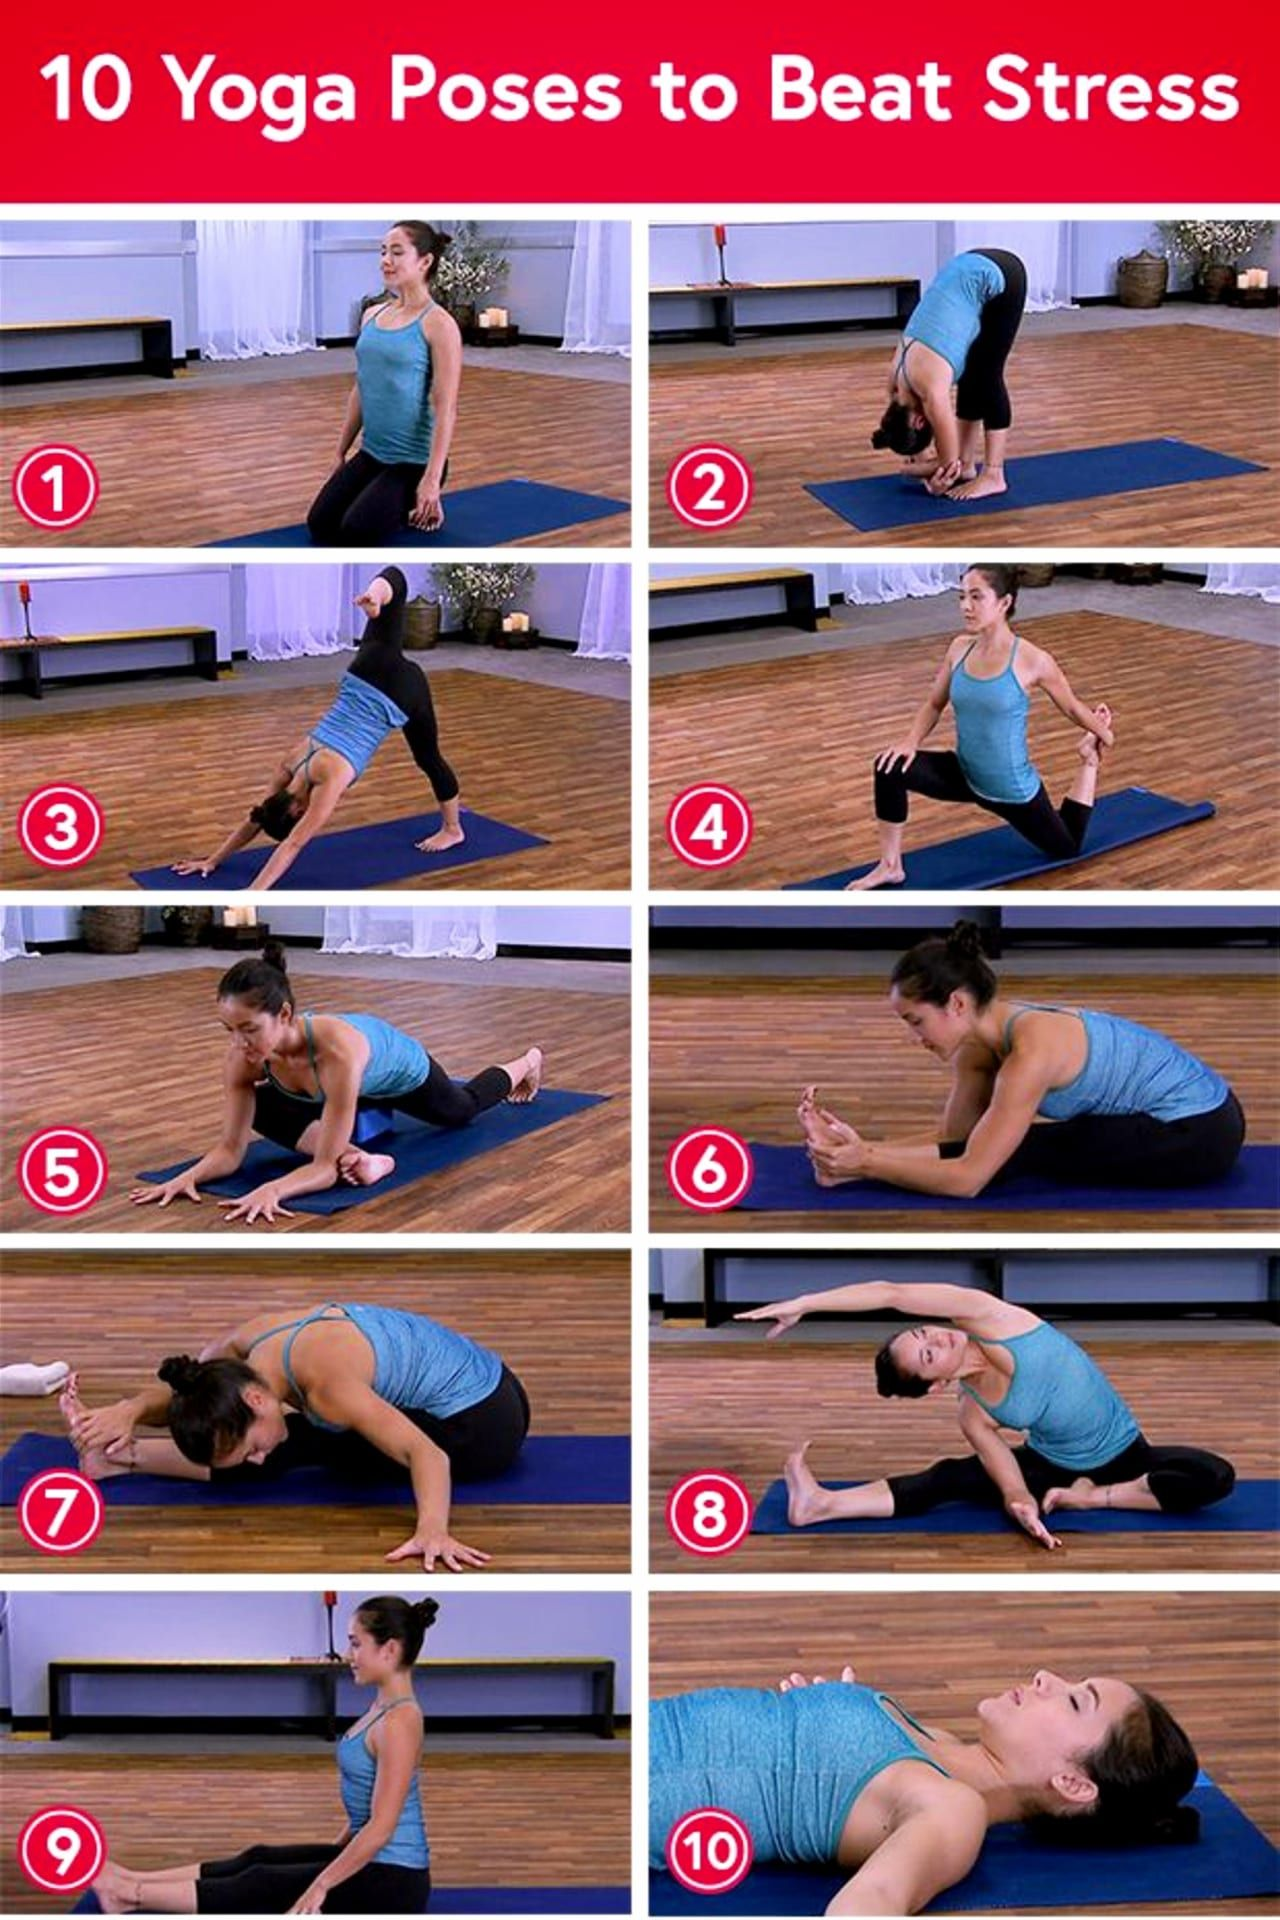 24++ Yoga poses for stress relief ideas in 2021